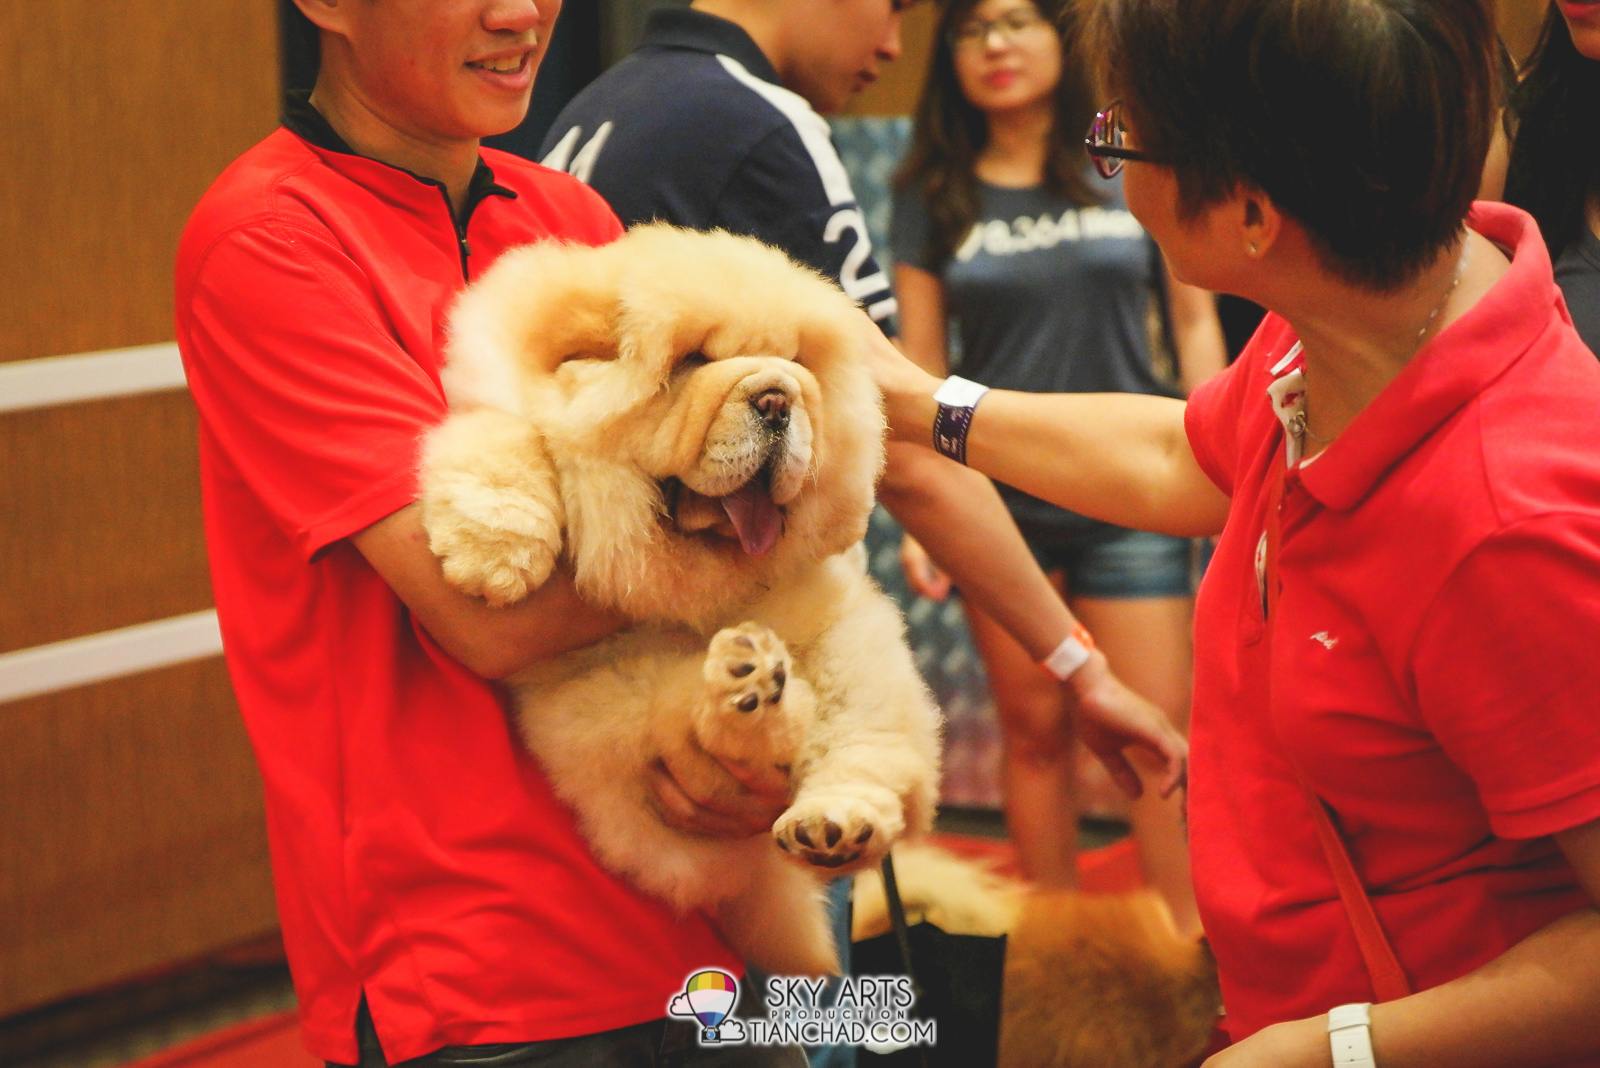 Super fluffy Chow Chow